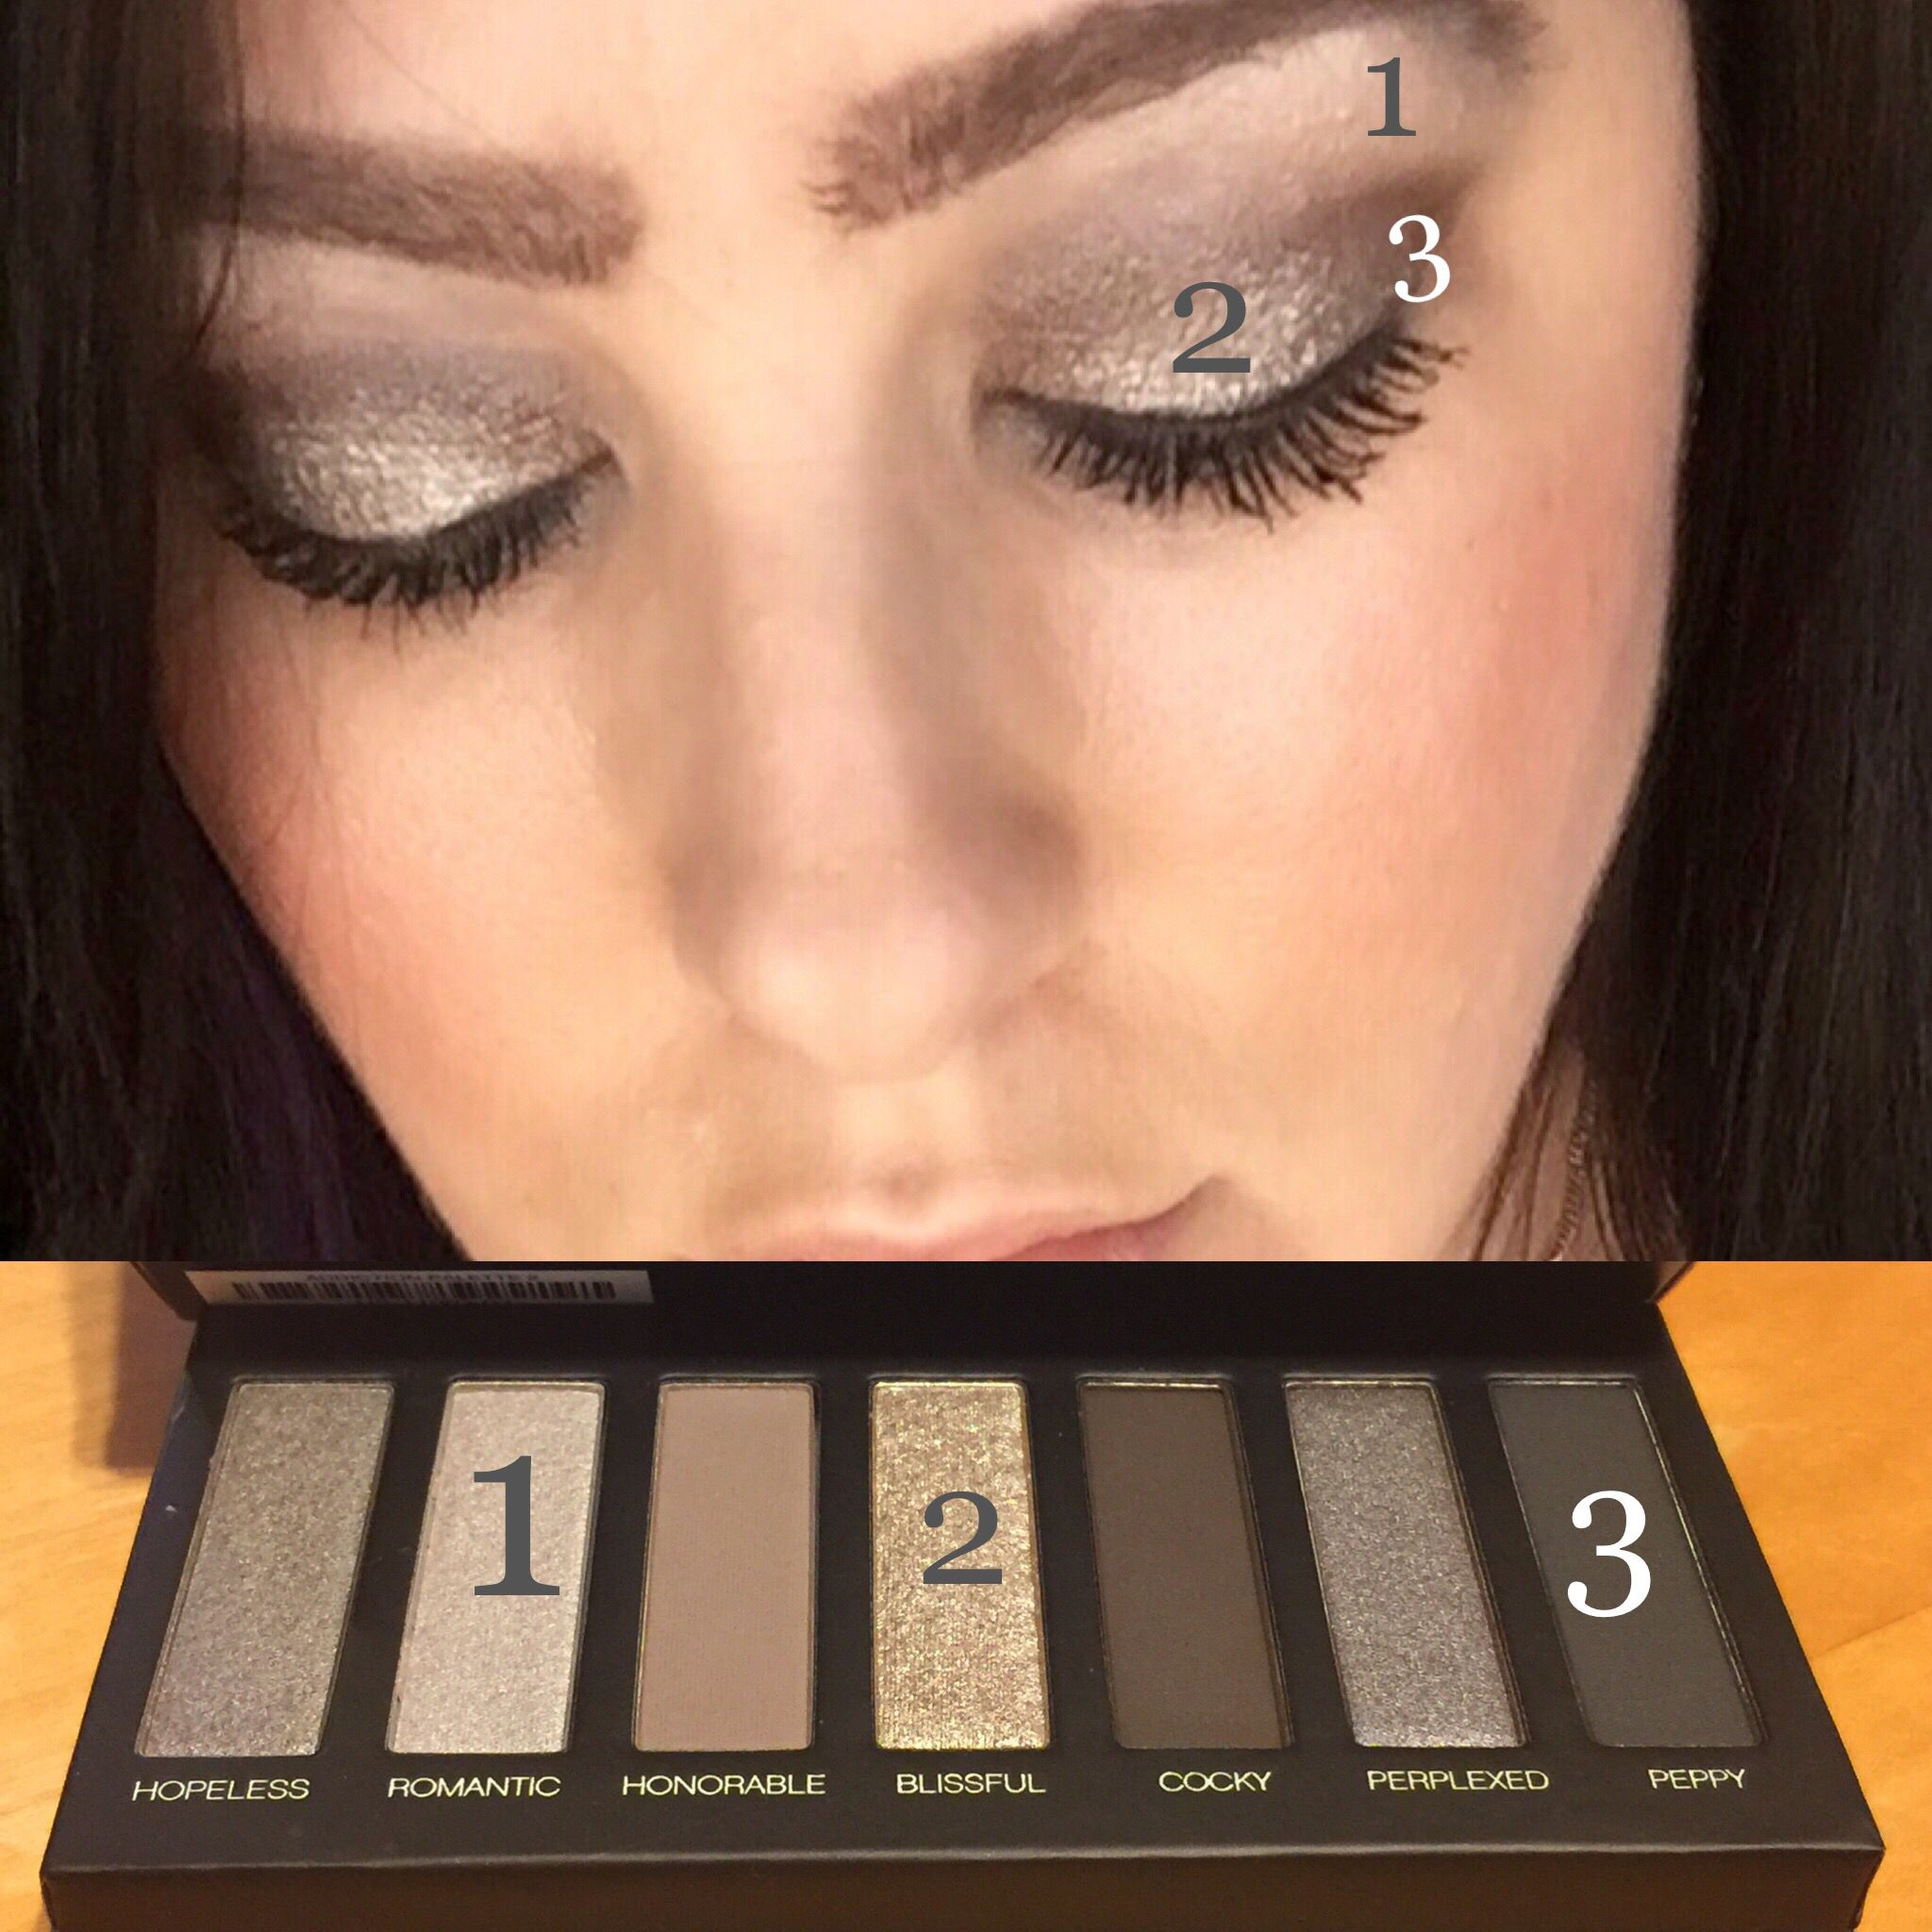 charlies younique eyes images - HD2048×2048